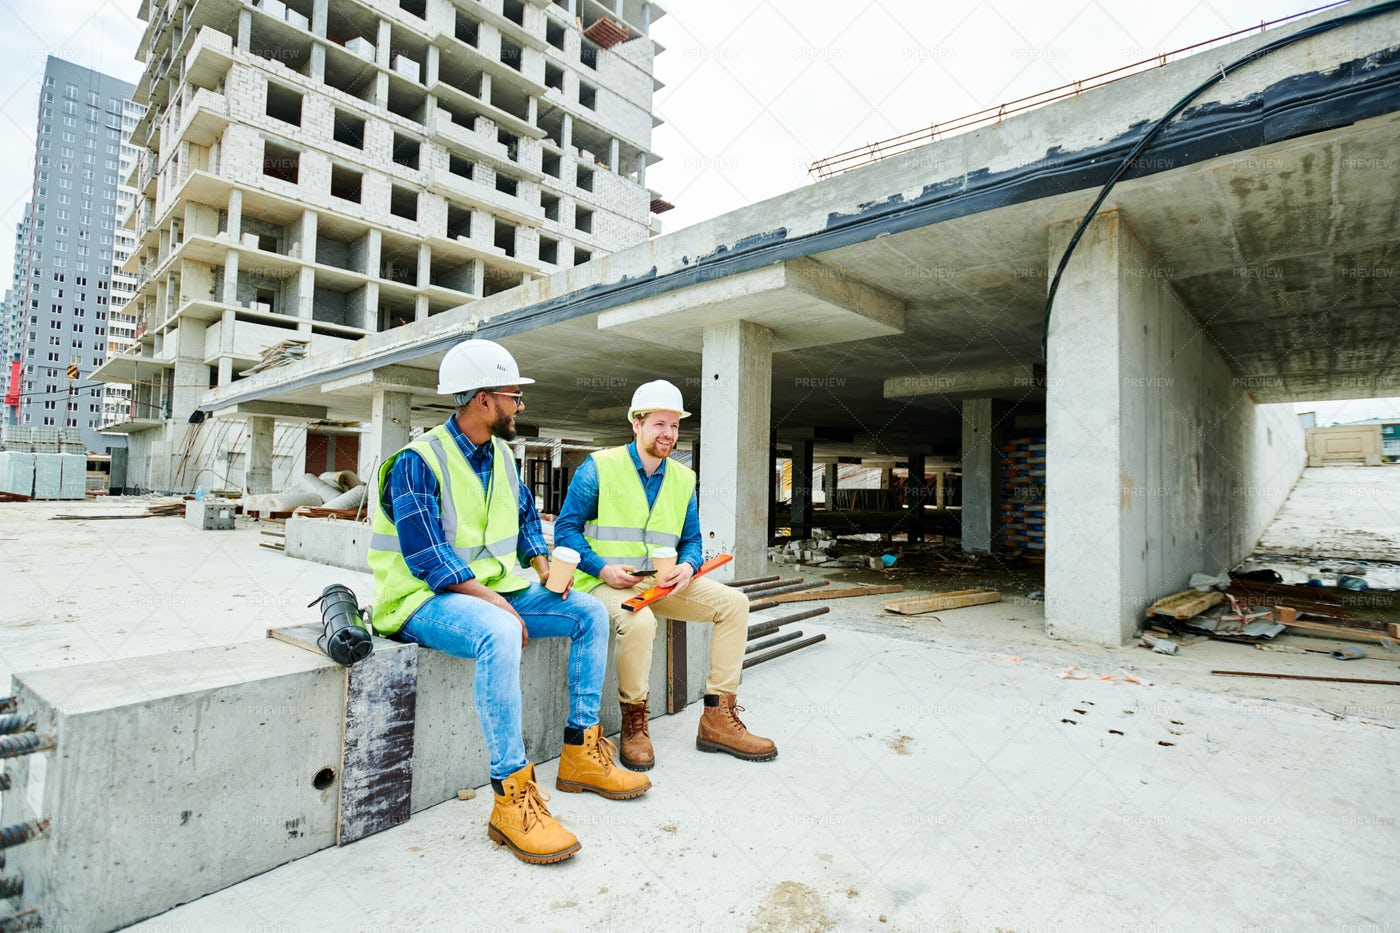 Positive Builders Relaxing On...: Stock Photos